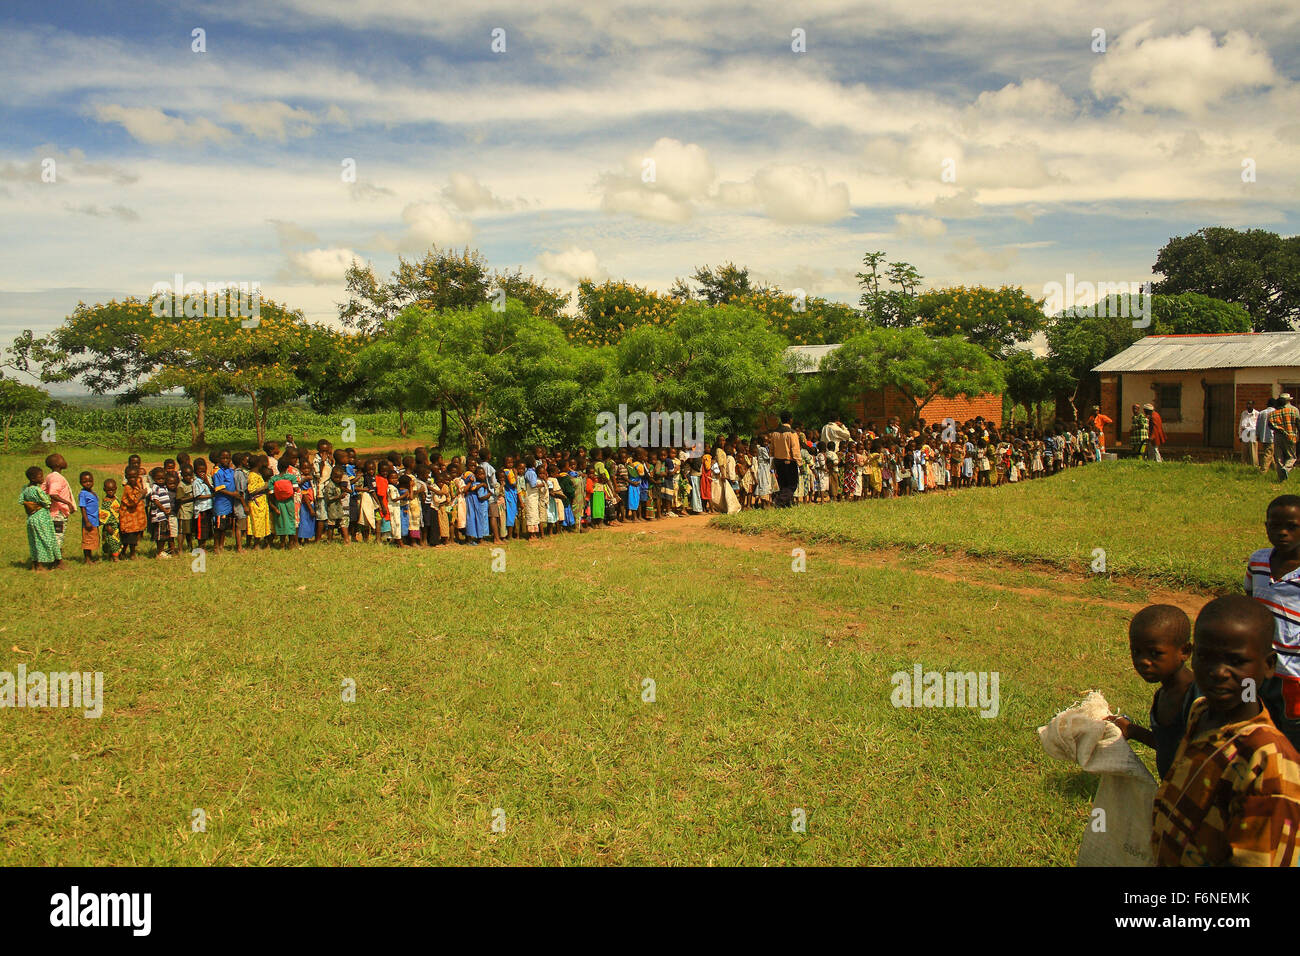 School children queuing for food from a feeding programme in the village of Nyombe, Malawi, Africa - Stock Image